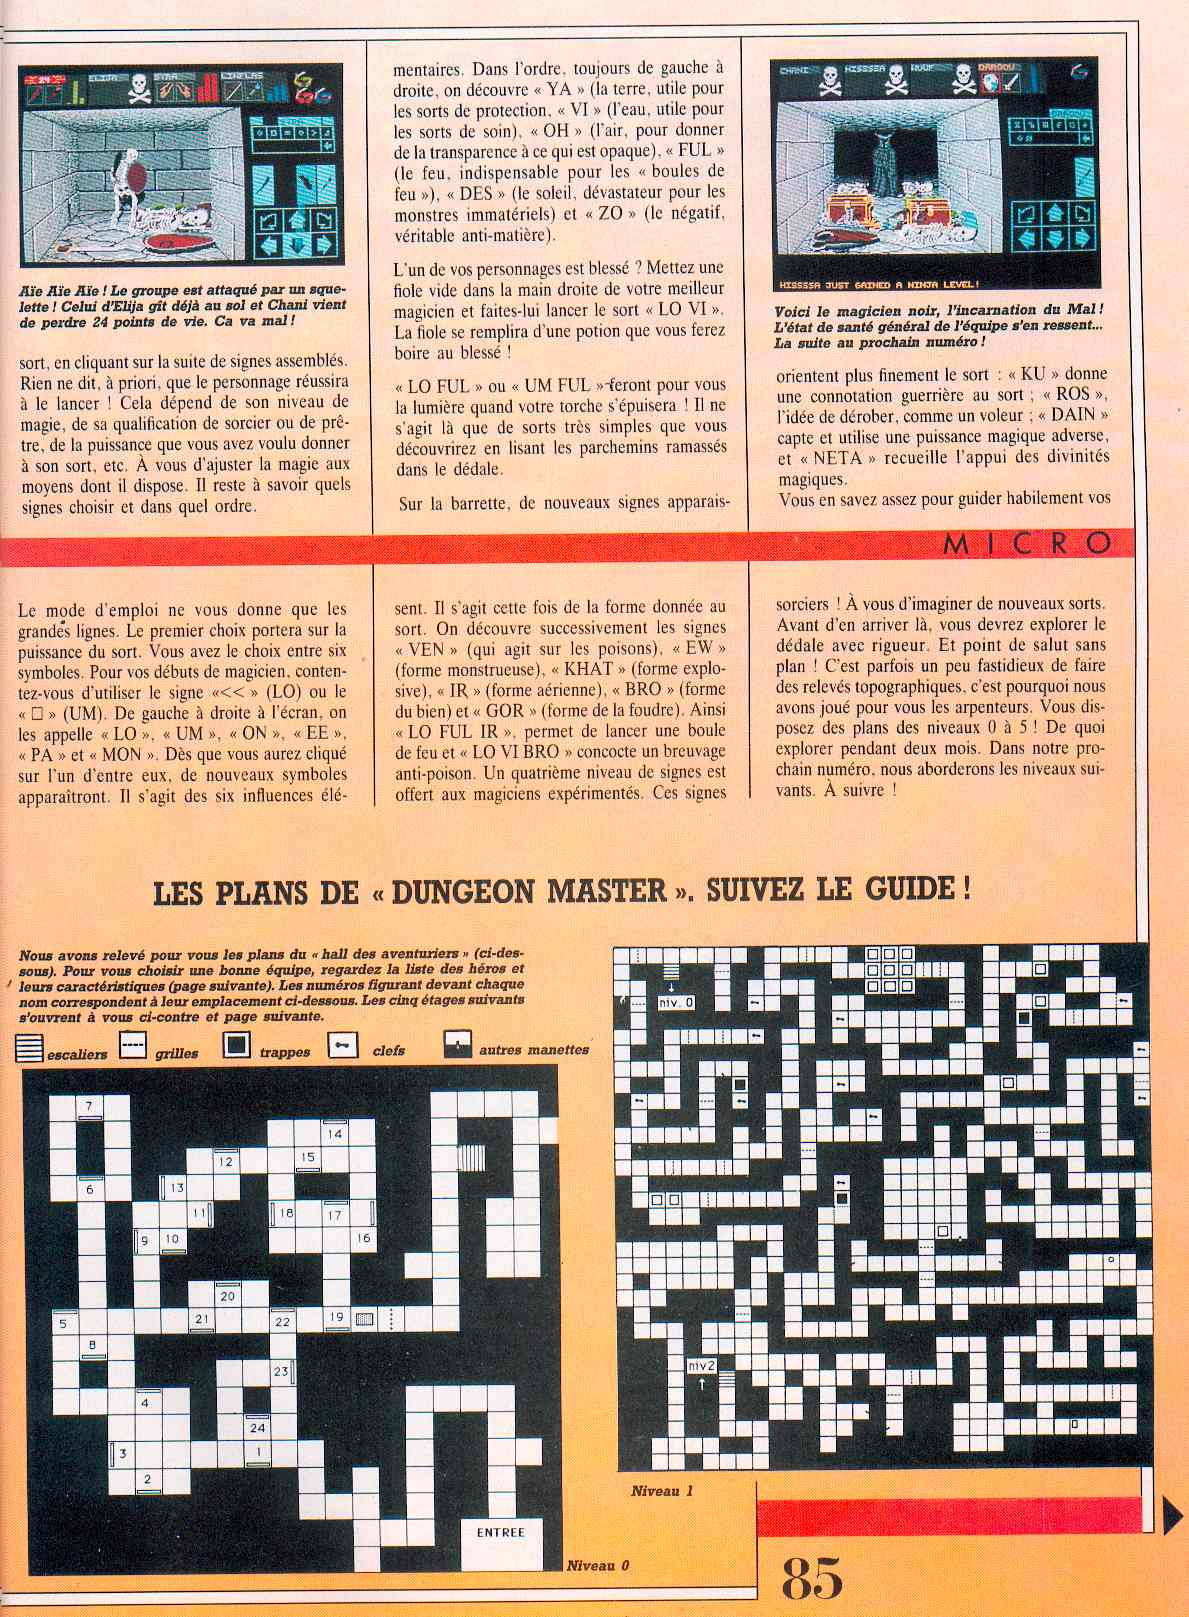 Dungeon Master guide published in French magazine 'Jeux et Stratégies', Issue #51, June 1998, Page 85